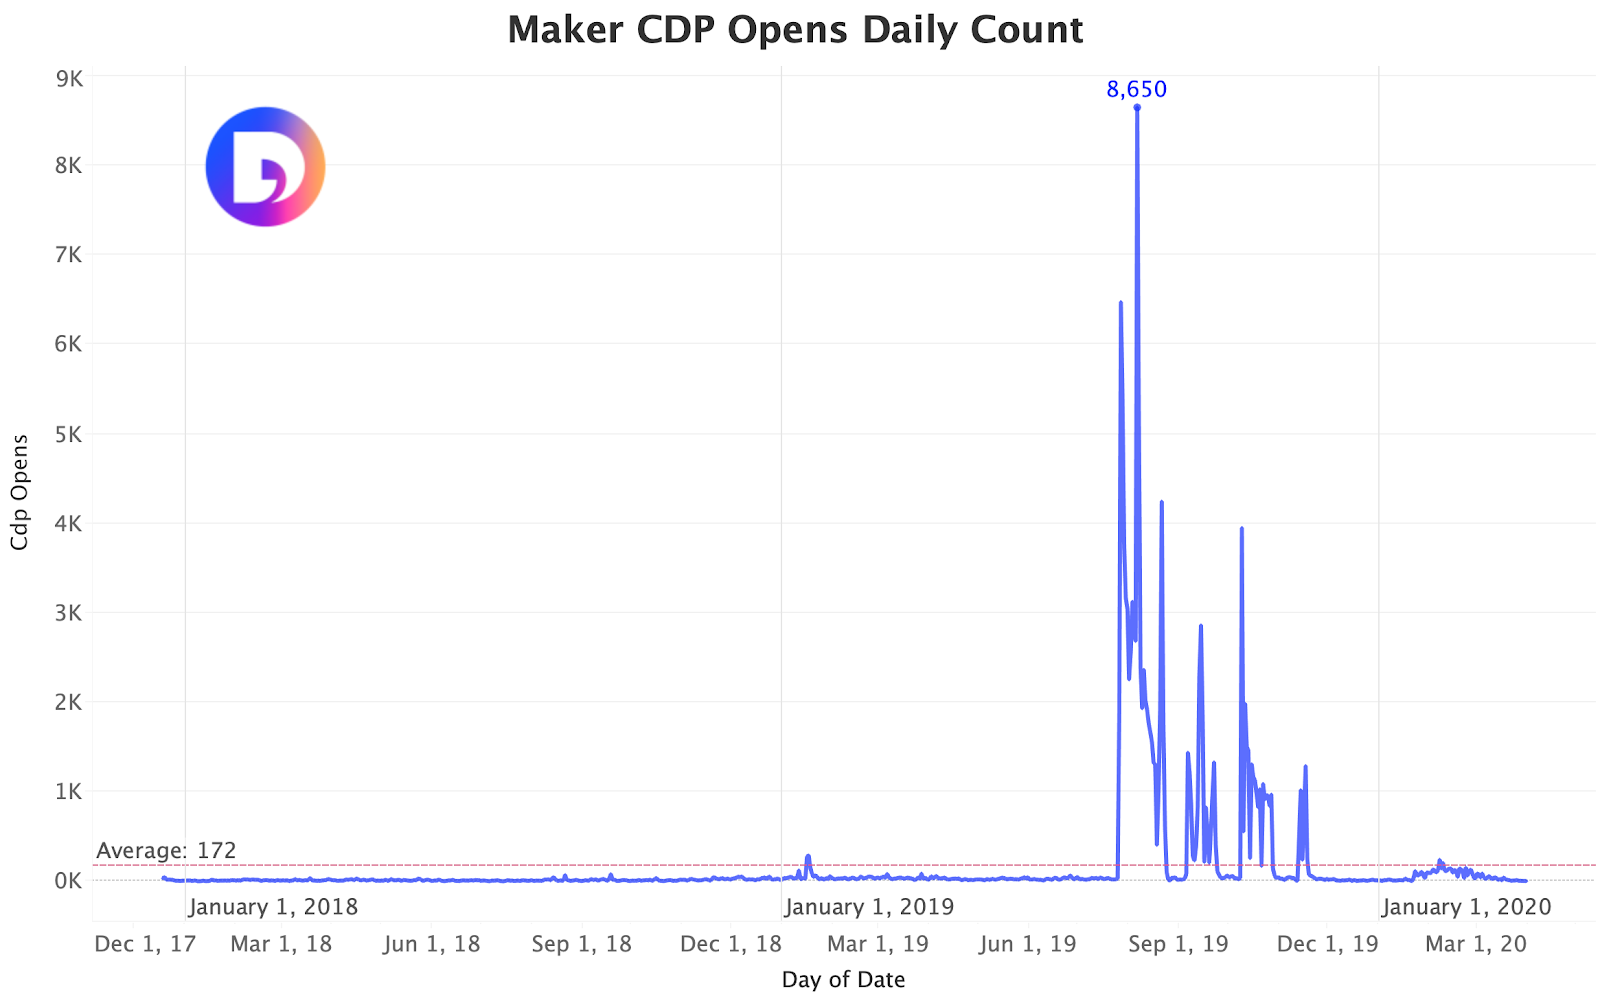 Fig 8. Maker's CDP Open Over Time